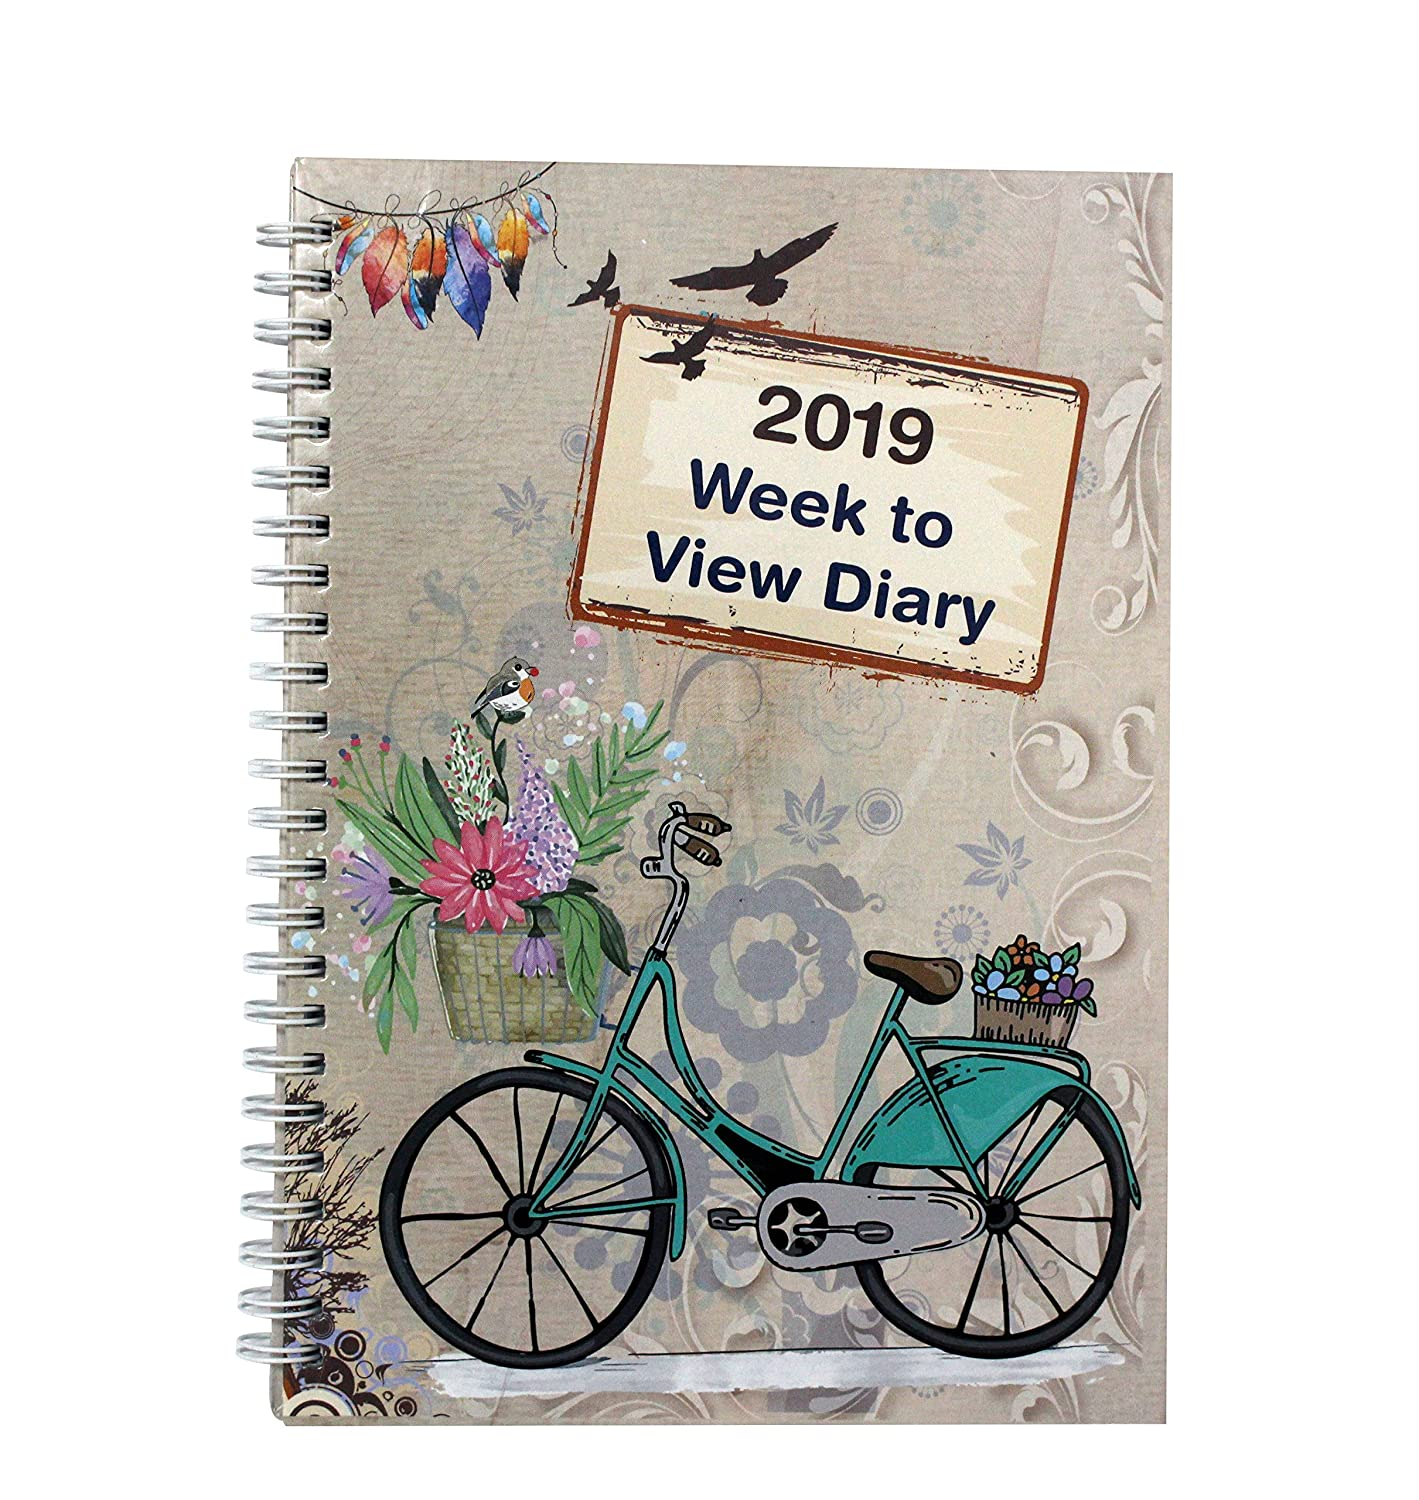 2019 A5 Week to View Diary Vintage Design Busy Life Agenda Diary by Arpan (Vintage Cream)